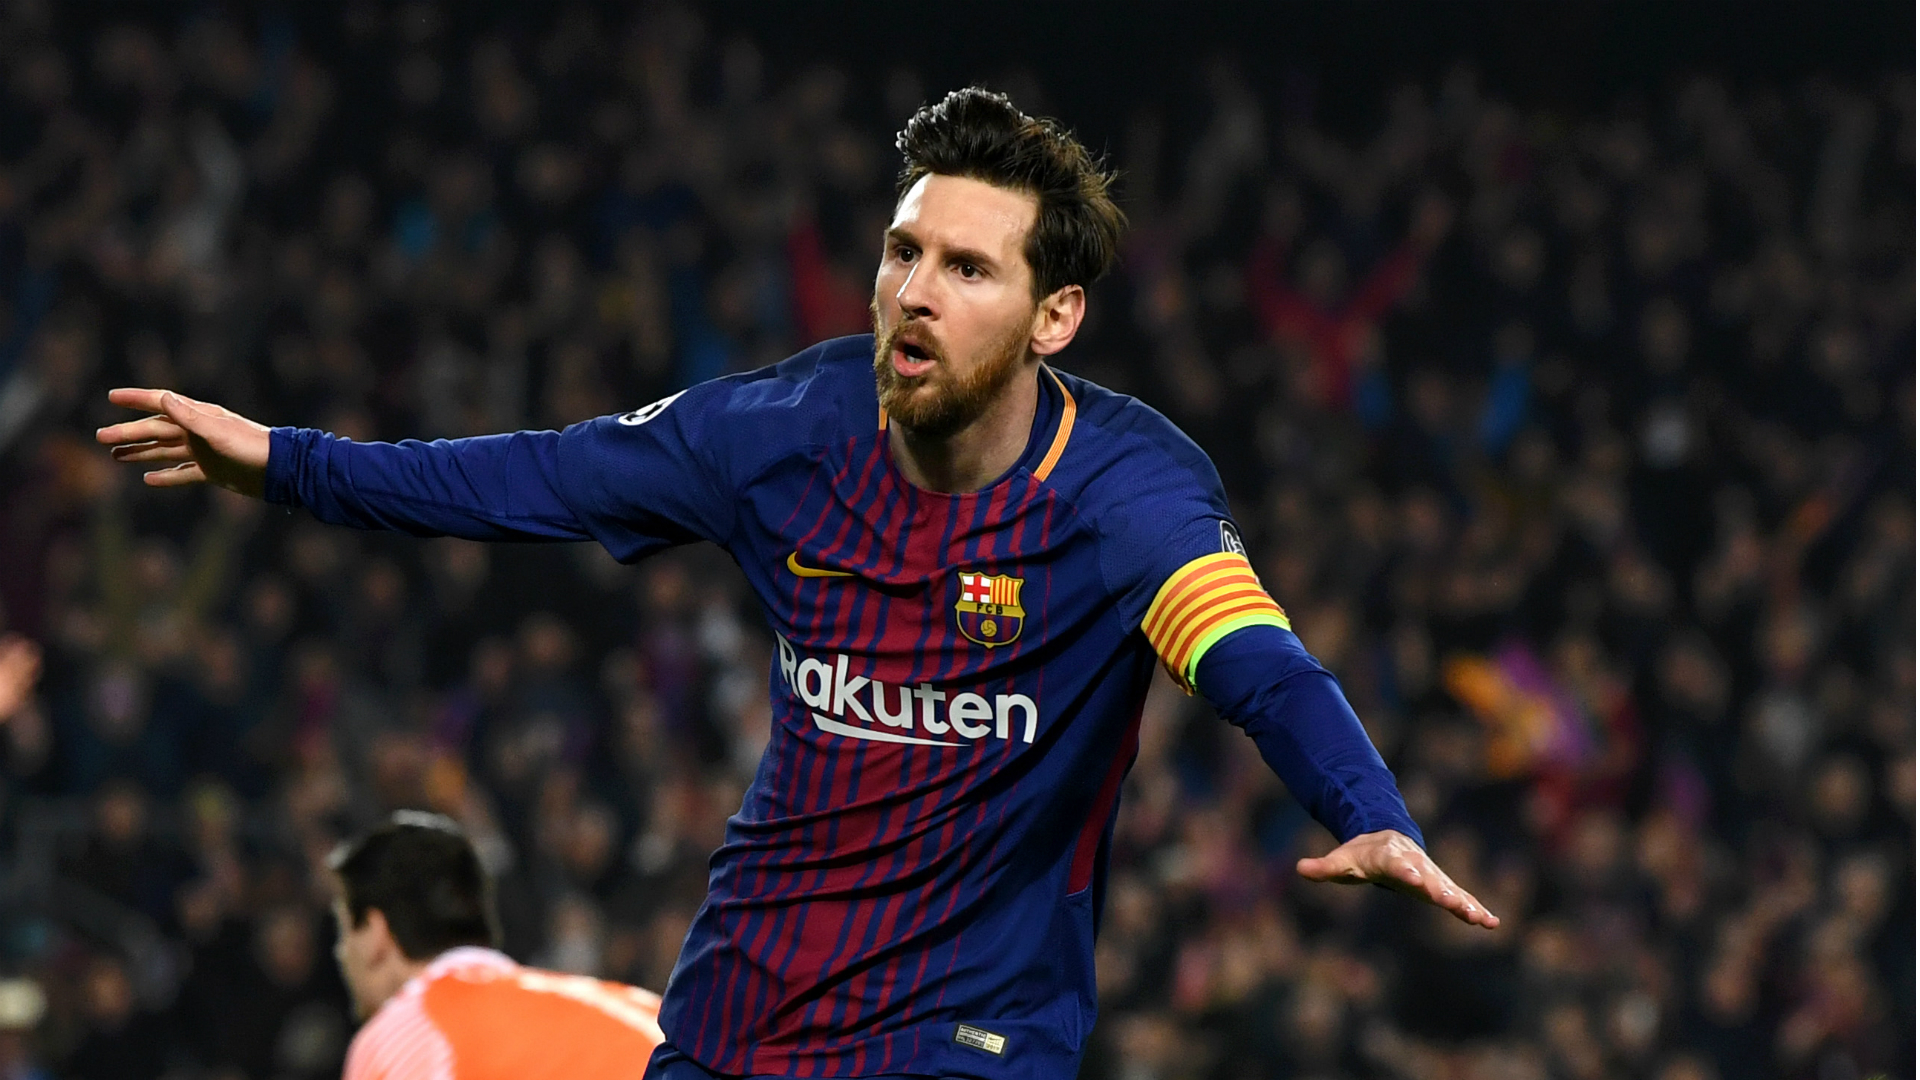 faster and younger than rival ronaldo magical messi s 100 champions league goals in opta numbers uefa champions league news stadium astro faster and younger than rival ronaldo magical messi s 100 champions league goals in opta numbers uefa champions league news stadium astro